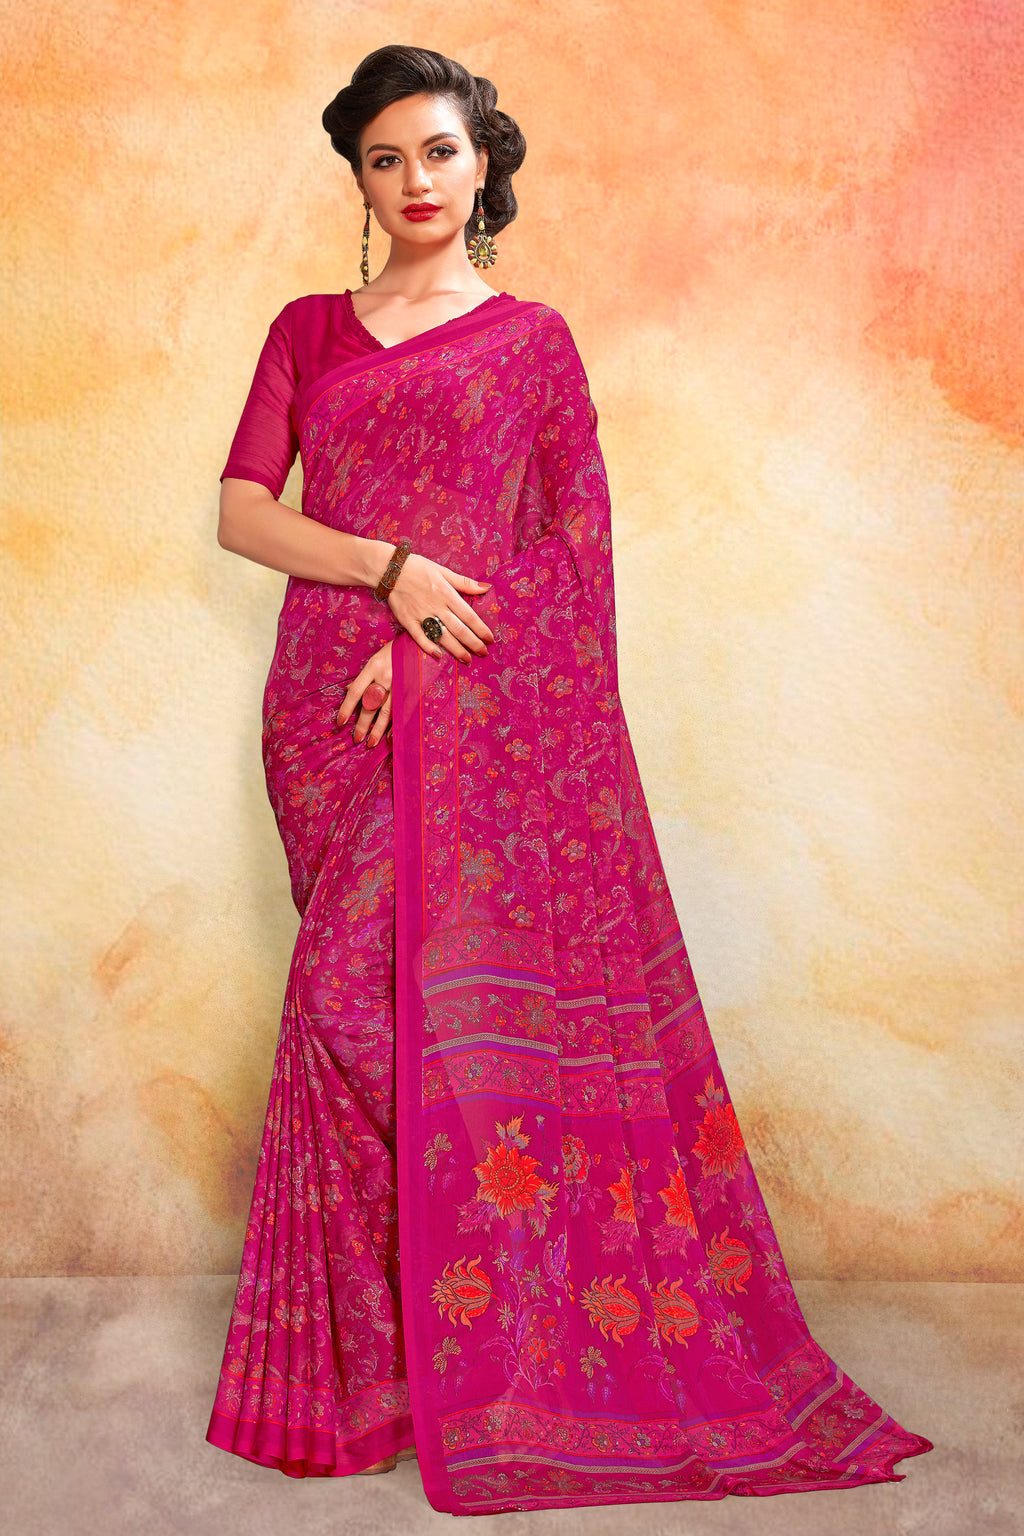 Rani Pink Color Chiffon Daily Wear Sarees NYF-8083